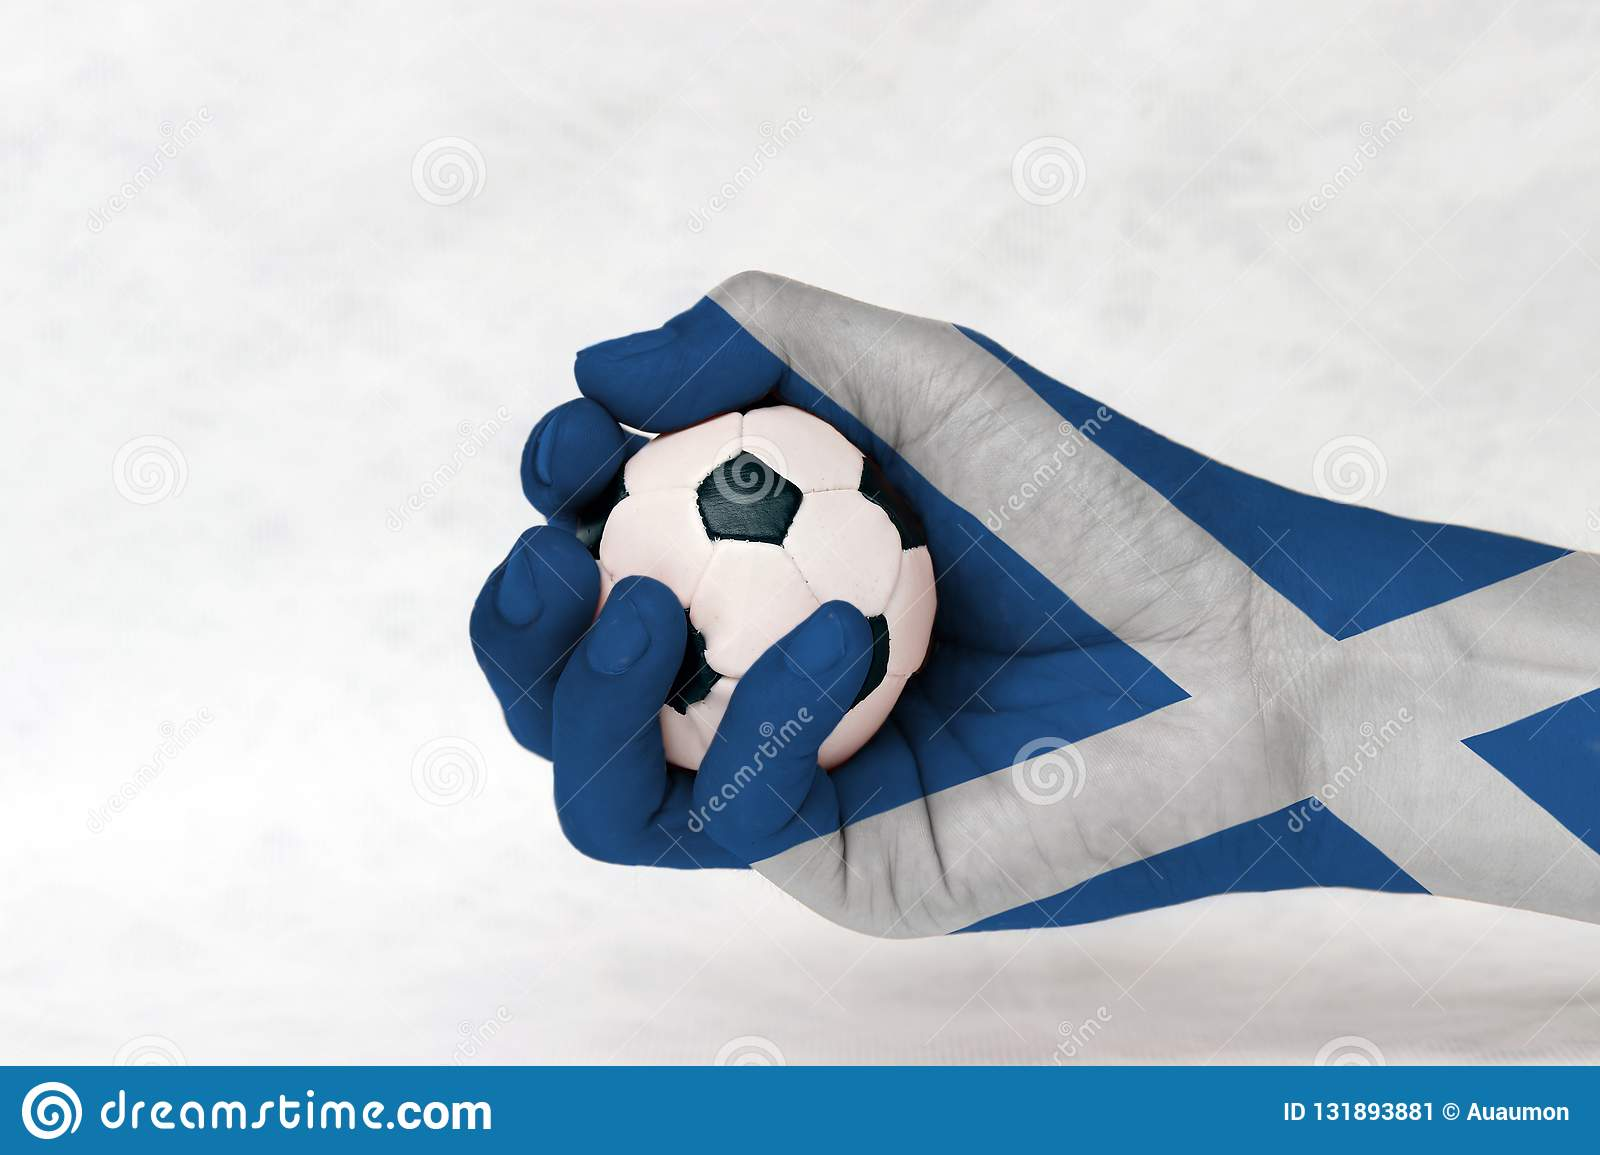 Mini ball of football in Scotland flag painted hand on white background. Concept of sport or the game in handle or minor matter.